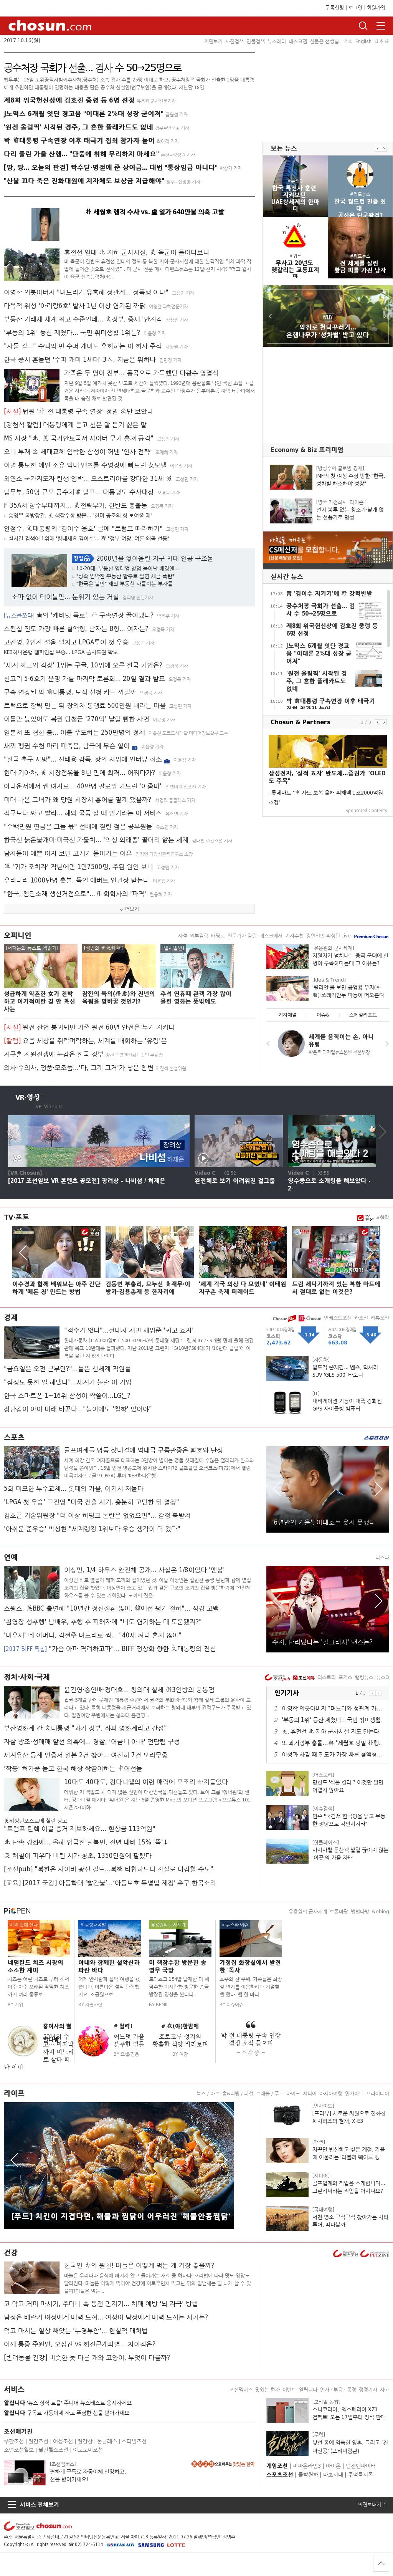 chosun.com at Sunday Oct. 15, 2017, 8:01 p.m. UTC